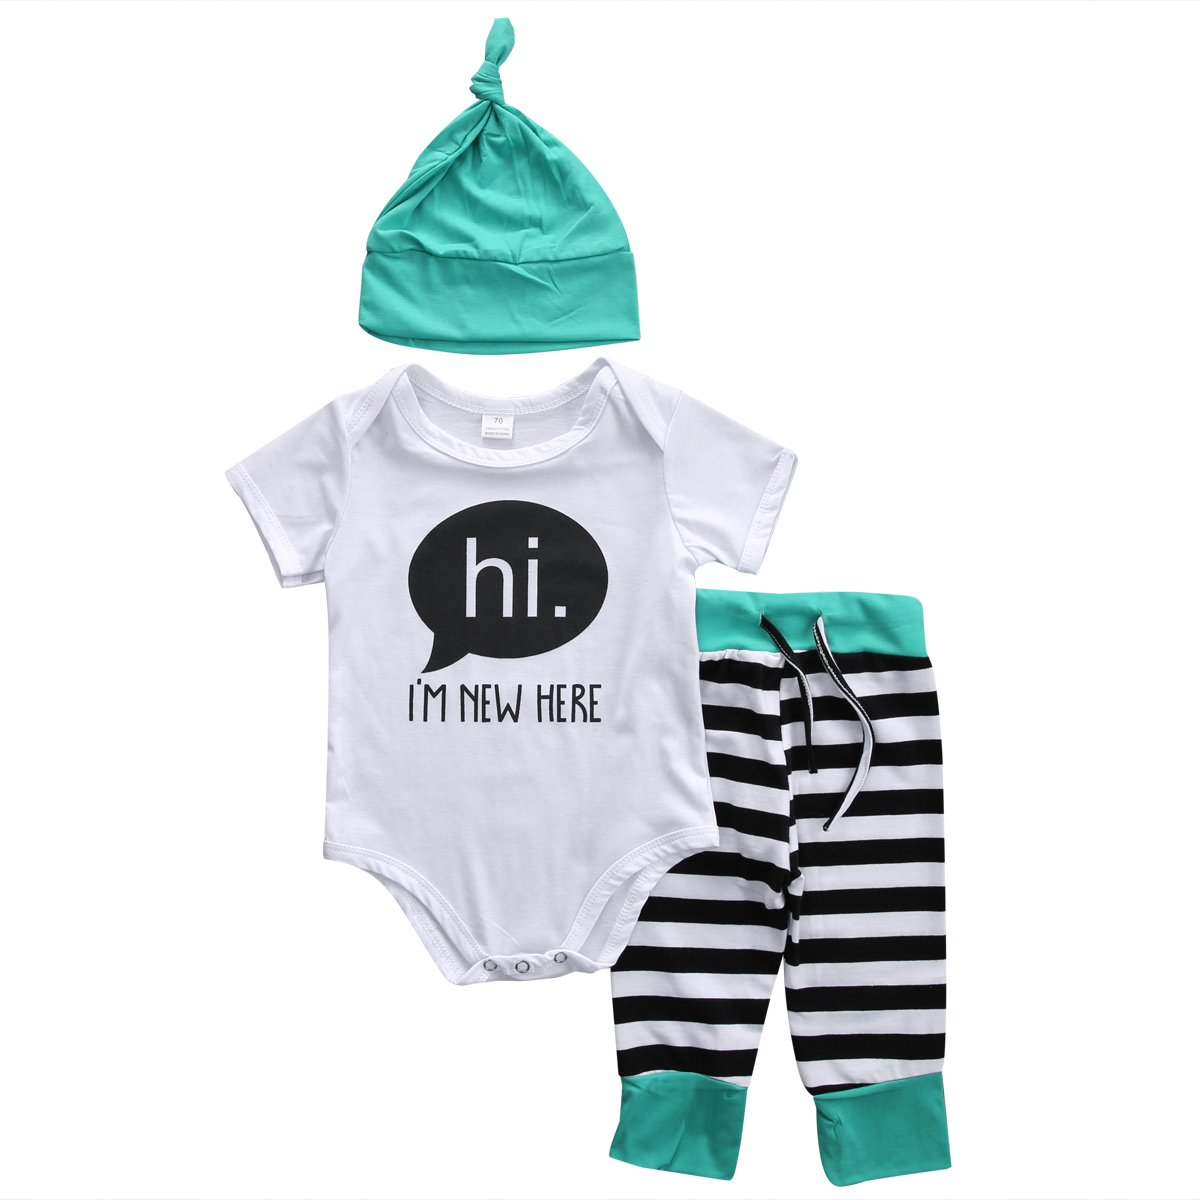 3Pcs Newborn Baby Boys Girls Unisex Outfits Clothes Short Sleeve Bodysuit T-Shirt Tops Striped Pants Trousers Hats Casual Sets